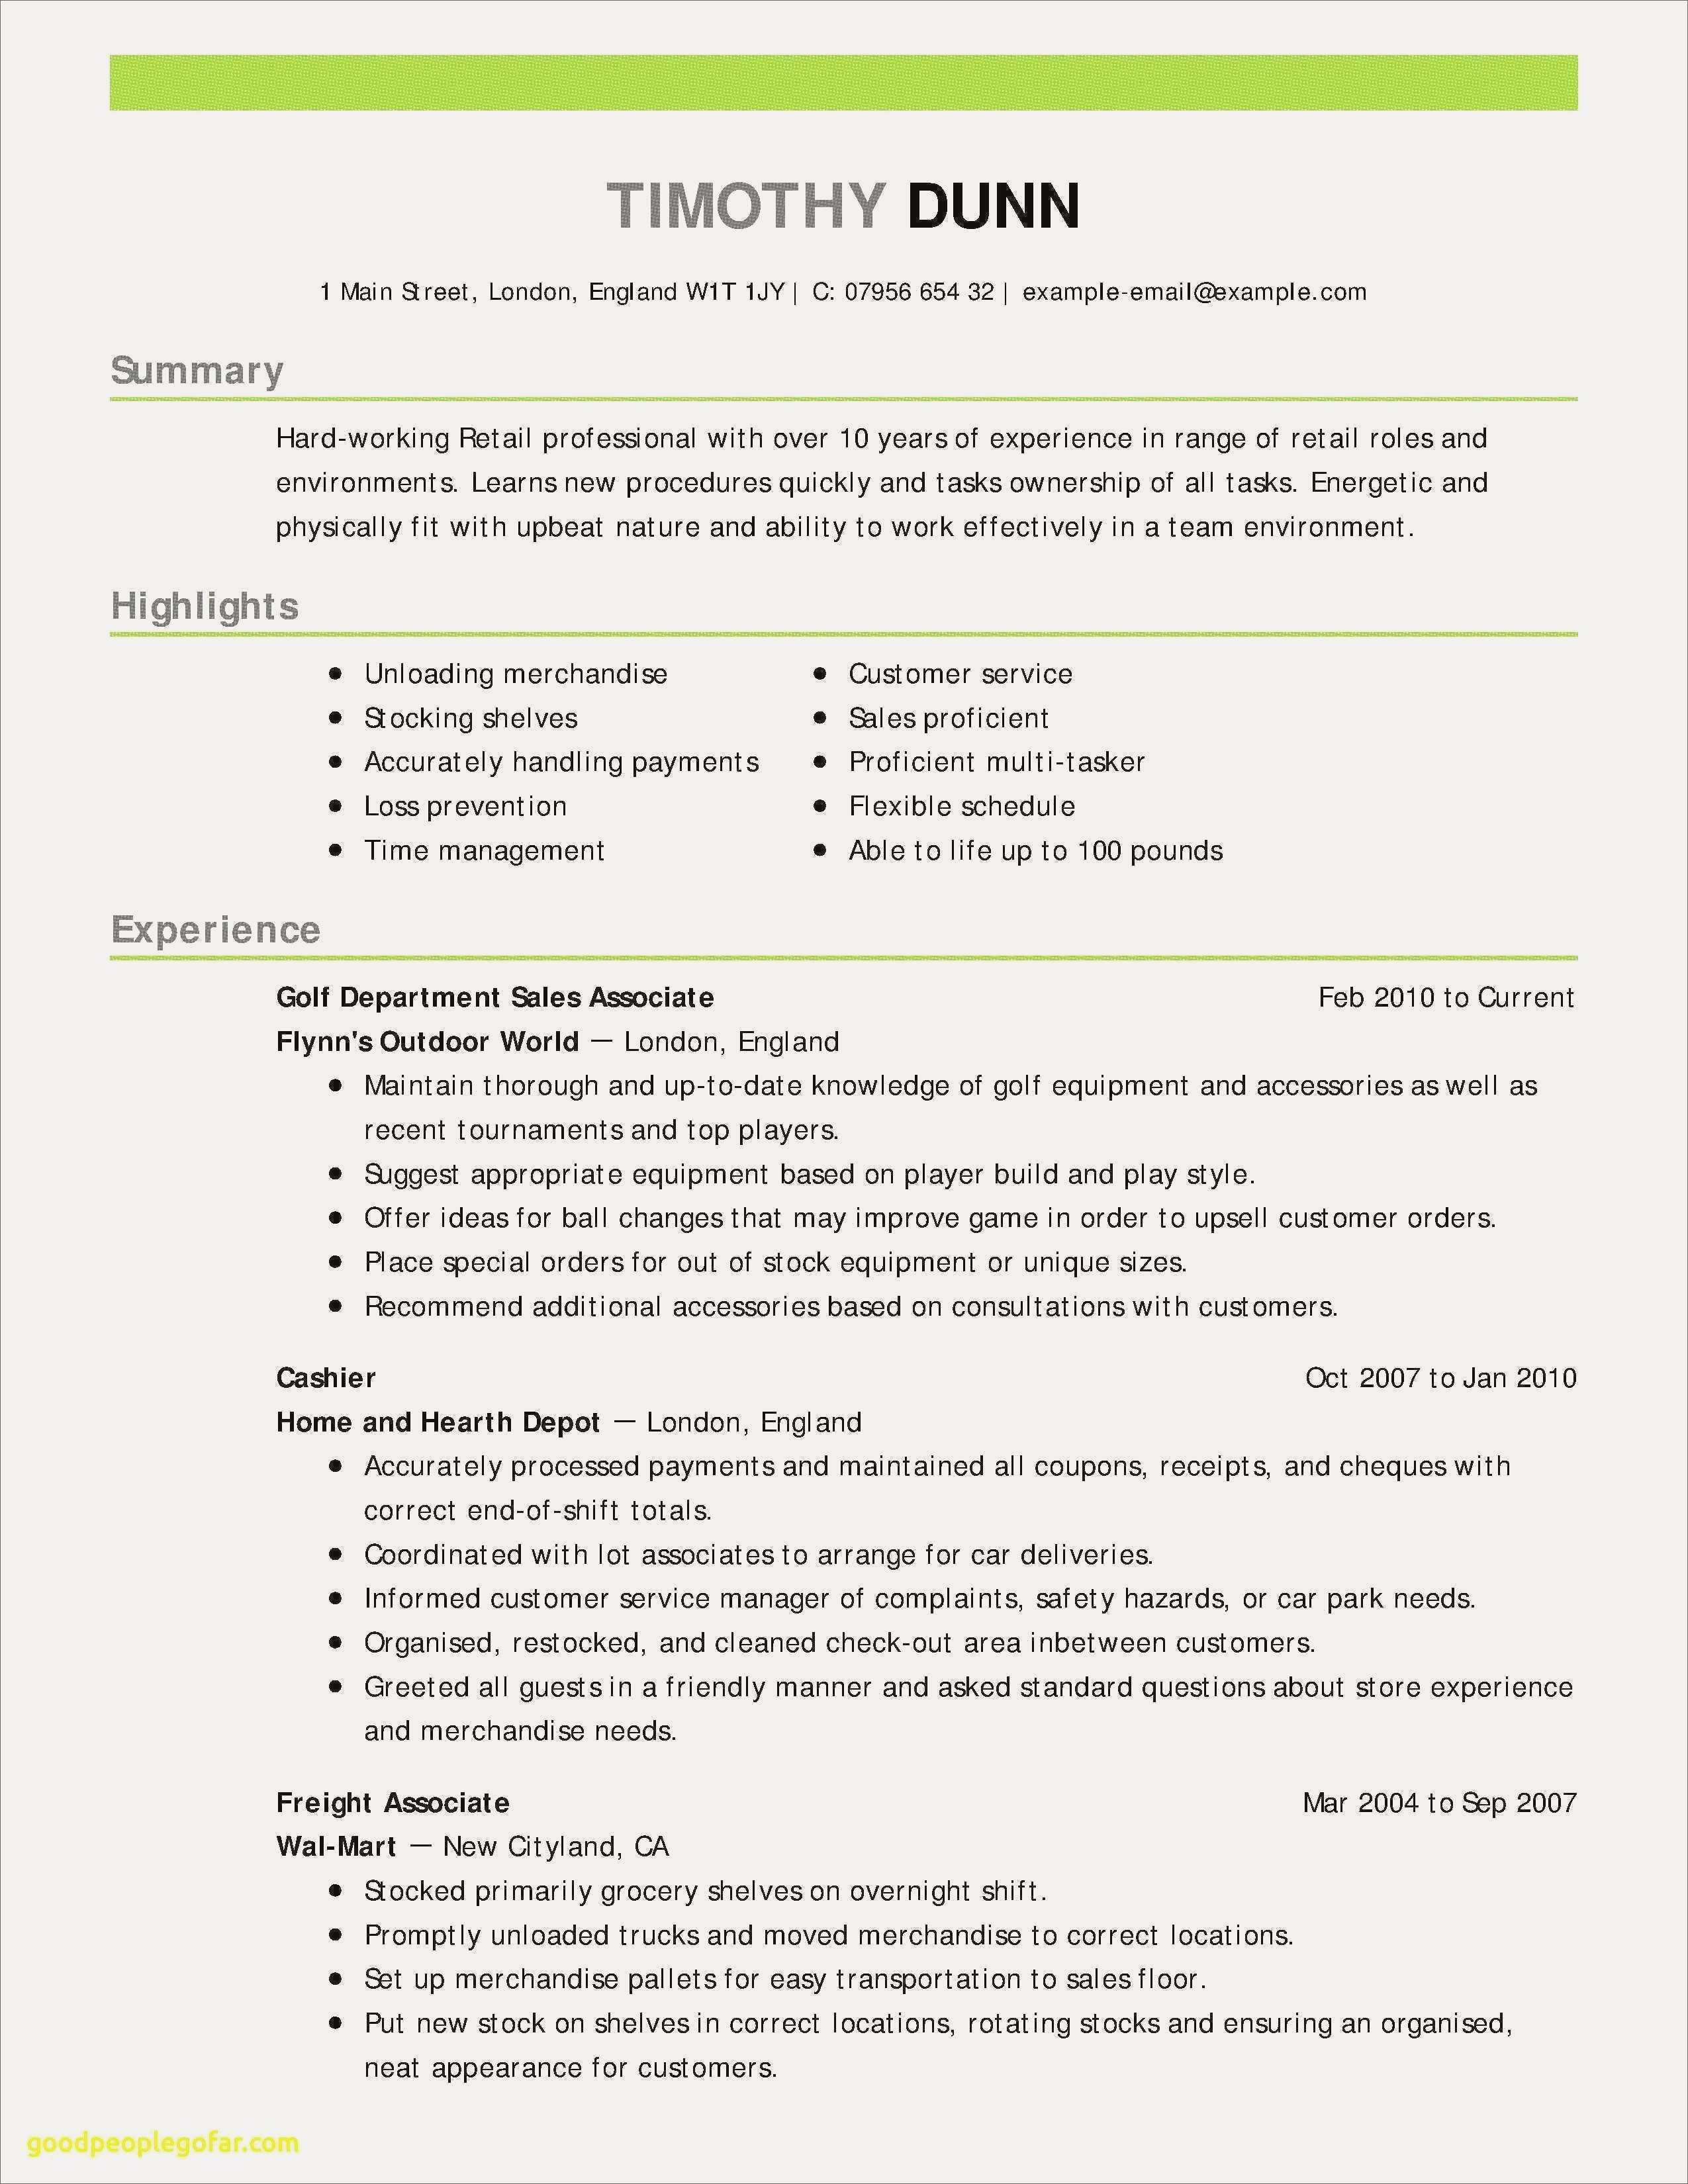 best customer service resume Collection-Resume Examples Skills And Abilities Best Customer Service Resume Sample Beautiful Resume Examples 0d Skills 19-h